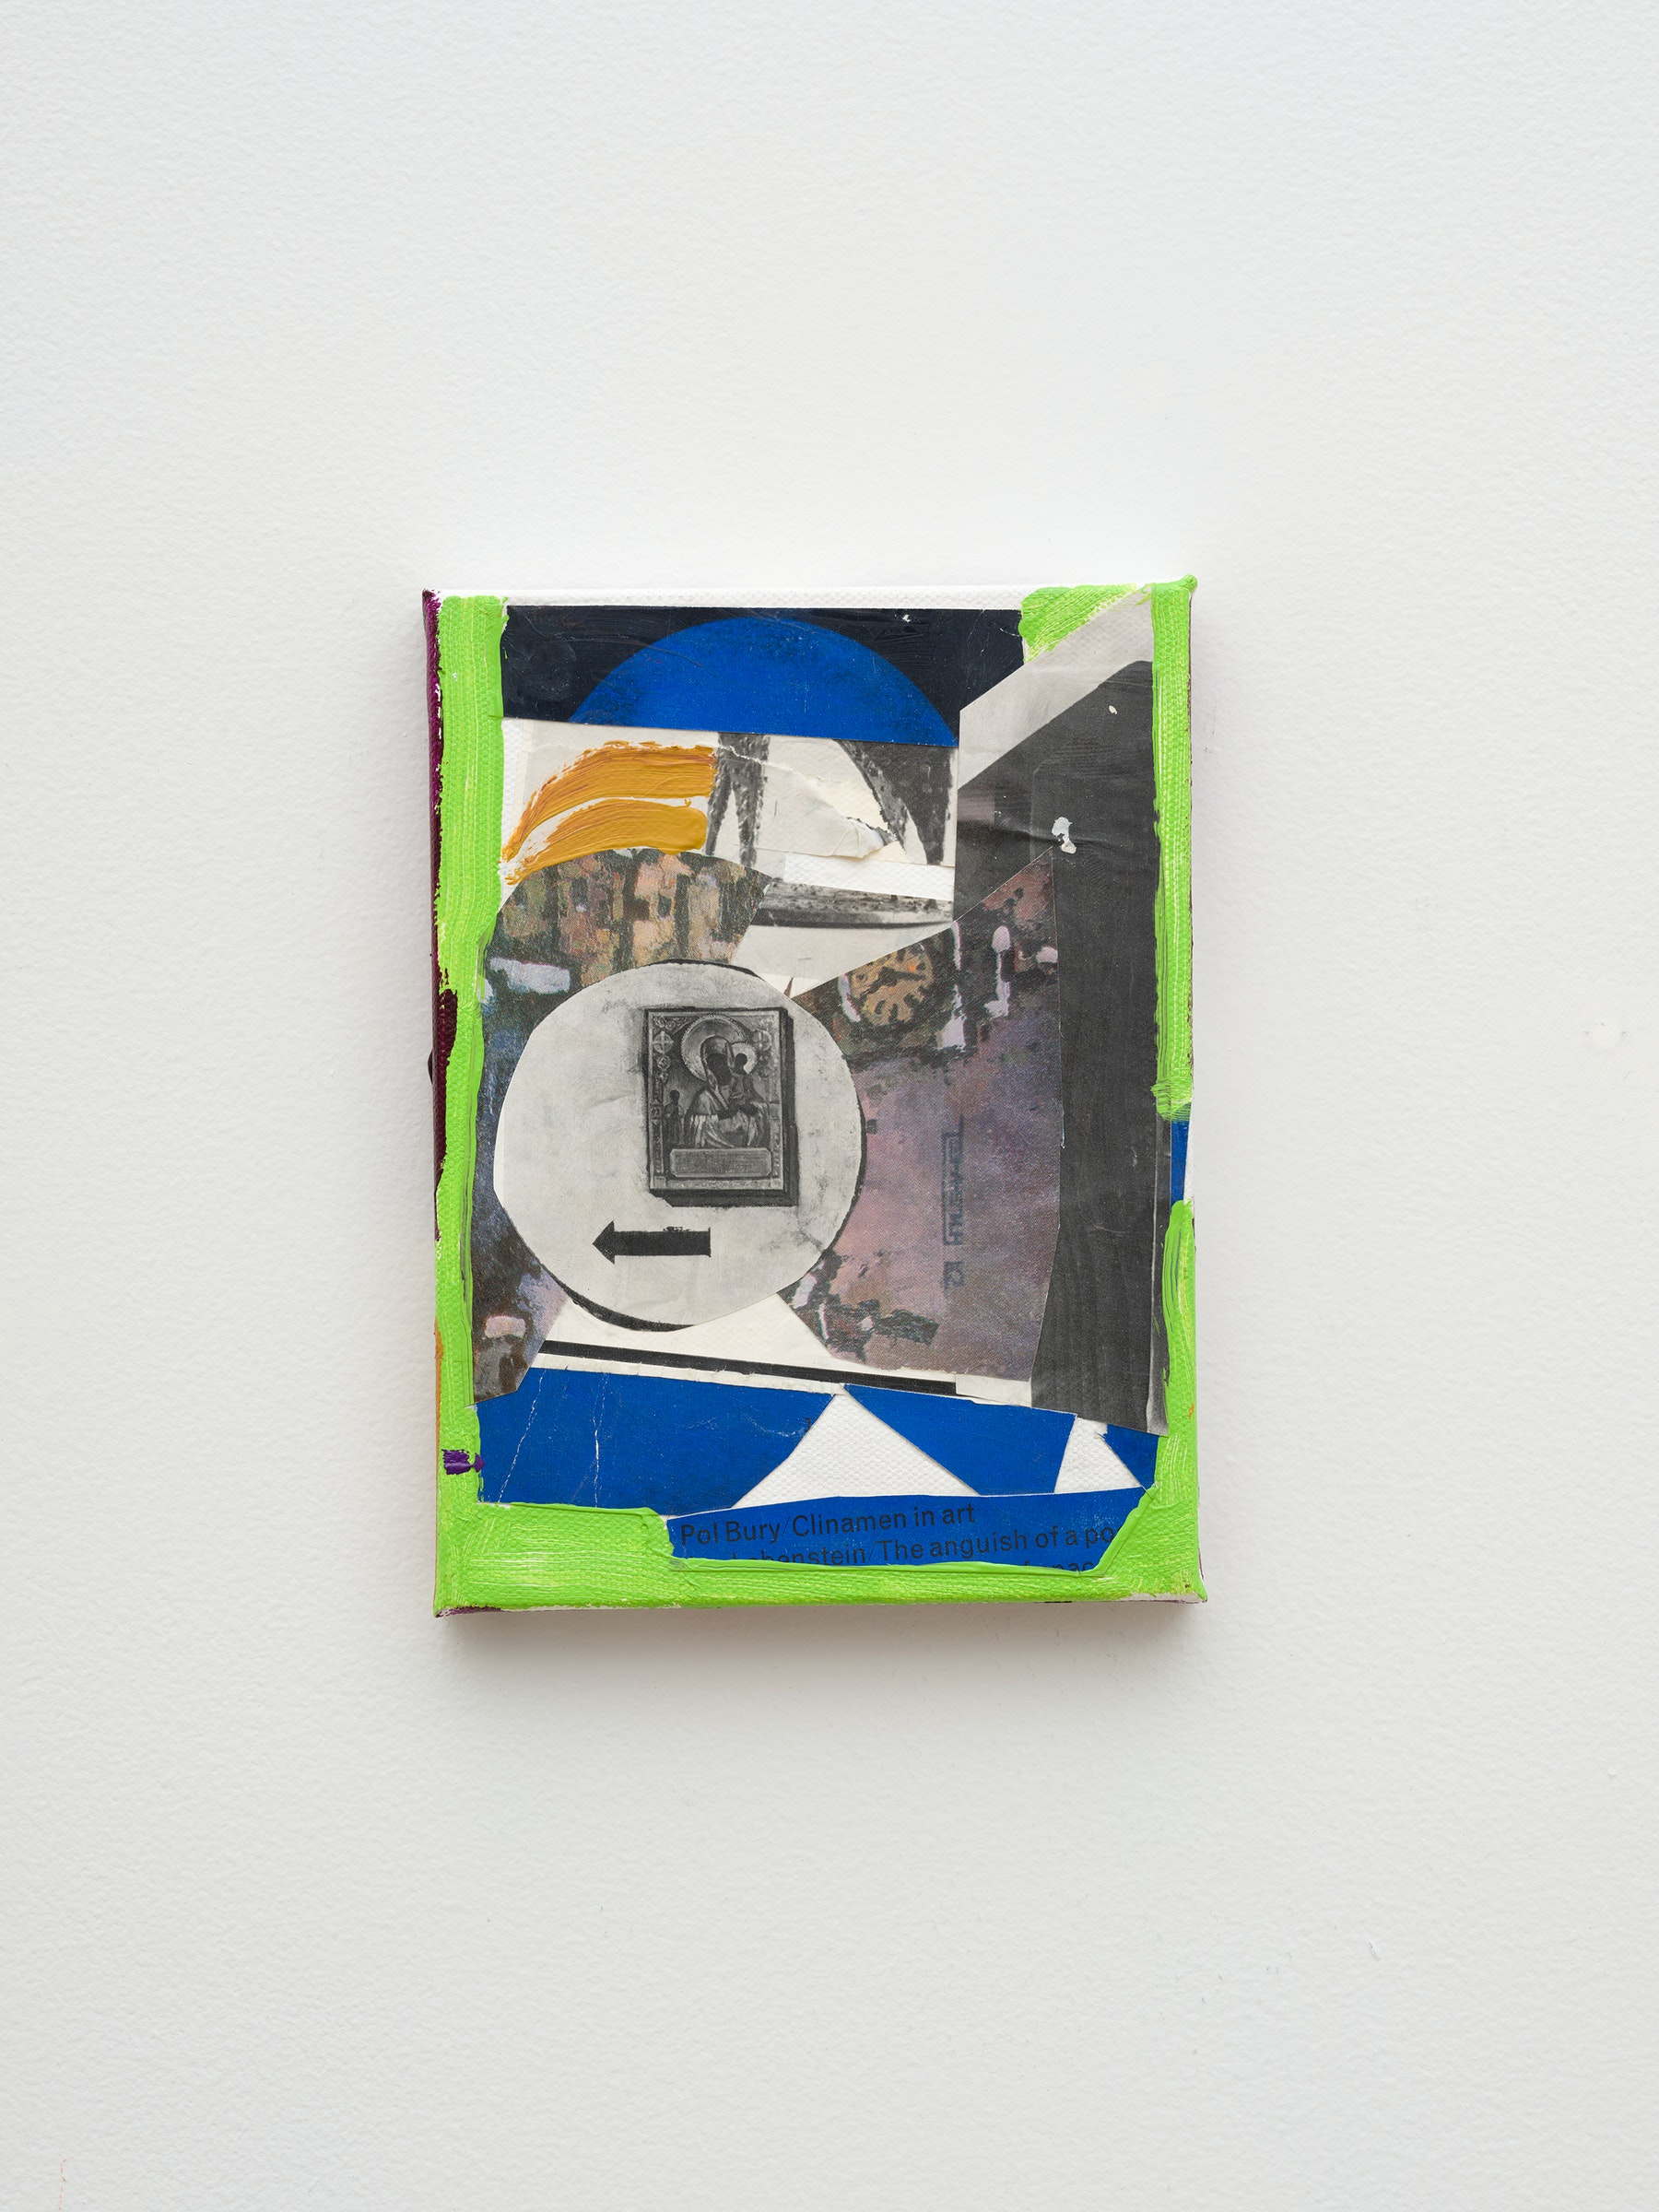 """Steve Roden """"clock,"""" 2020 Mixed media on canvas 8"""" x 6"""" x 1"""" [HxWxD] (20.32 x 15.24 x 2.54 cm) Inventory #ROD685 Courtesy of the artist and Vielmetter Los Angeles Photo credit: Jeff McLane Signed and dated on the back"""